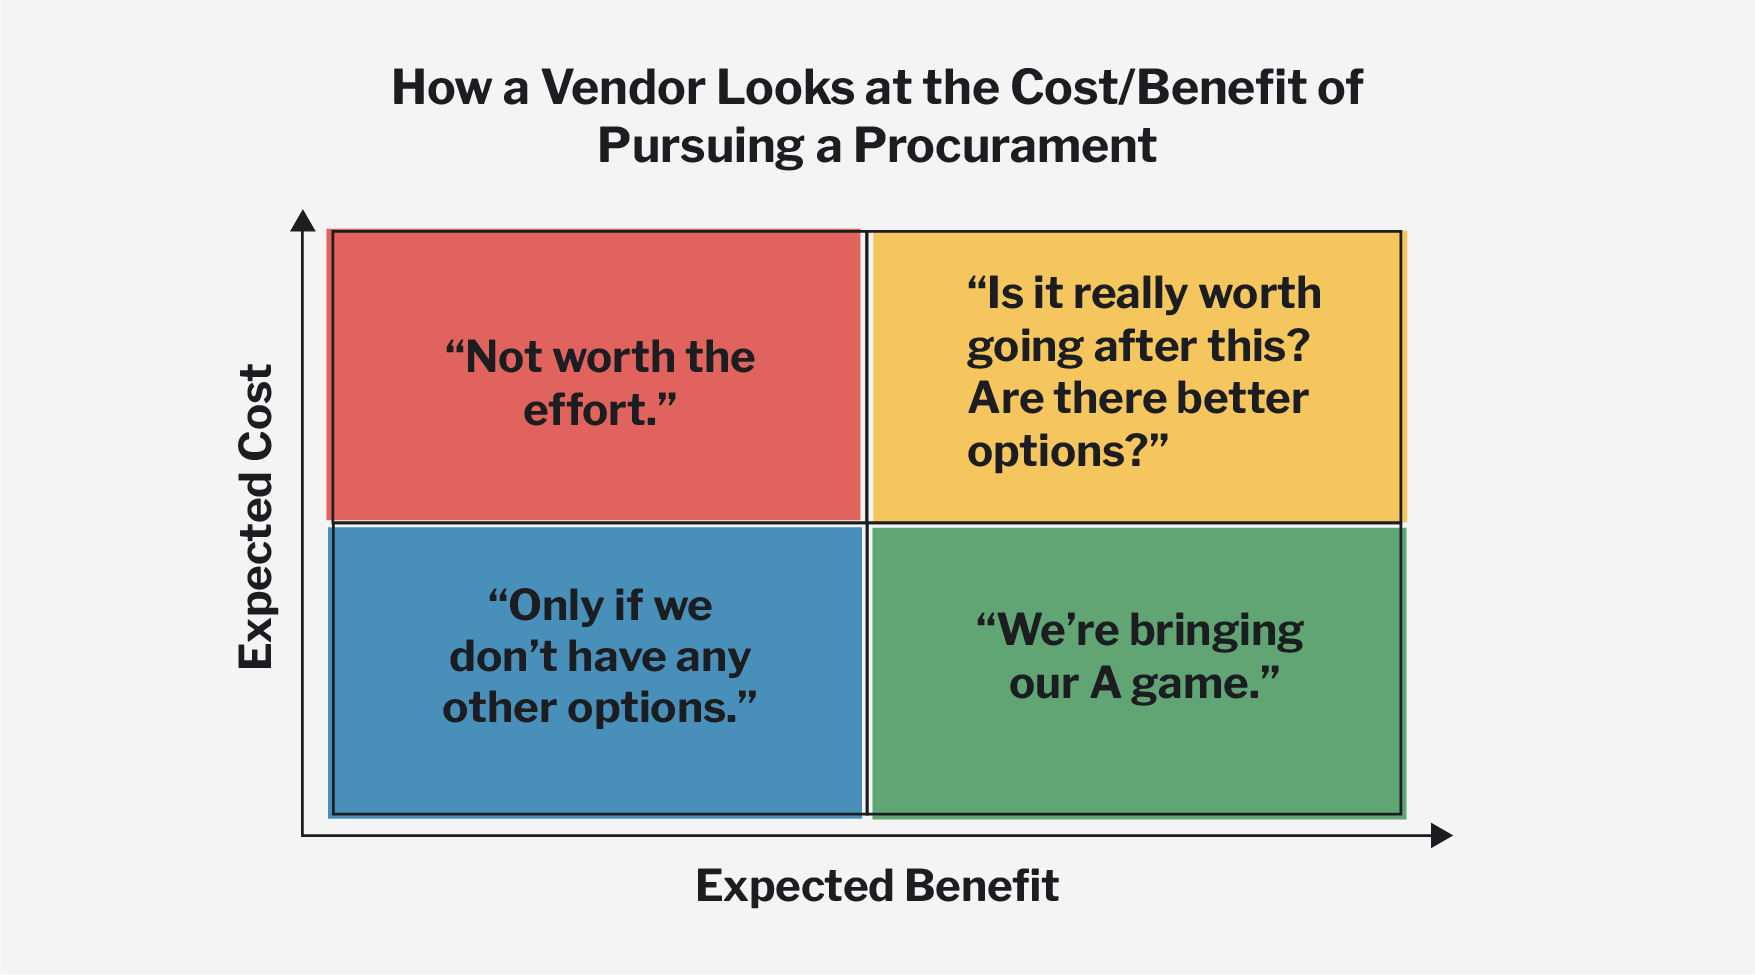 A 2x2 cost-benefit decision matrix illustrating the thought process a vendor goes through when deciding to pursue a government procurement.